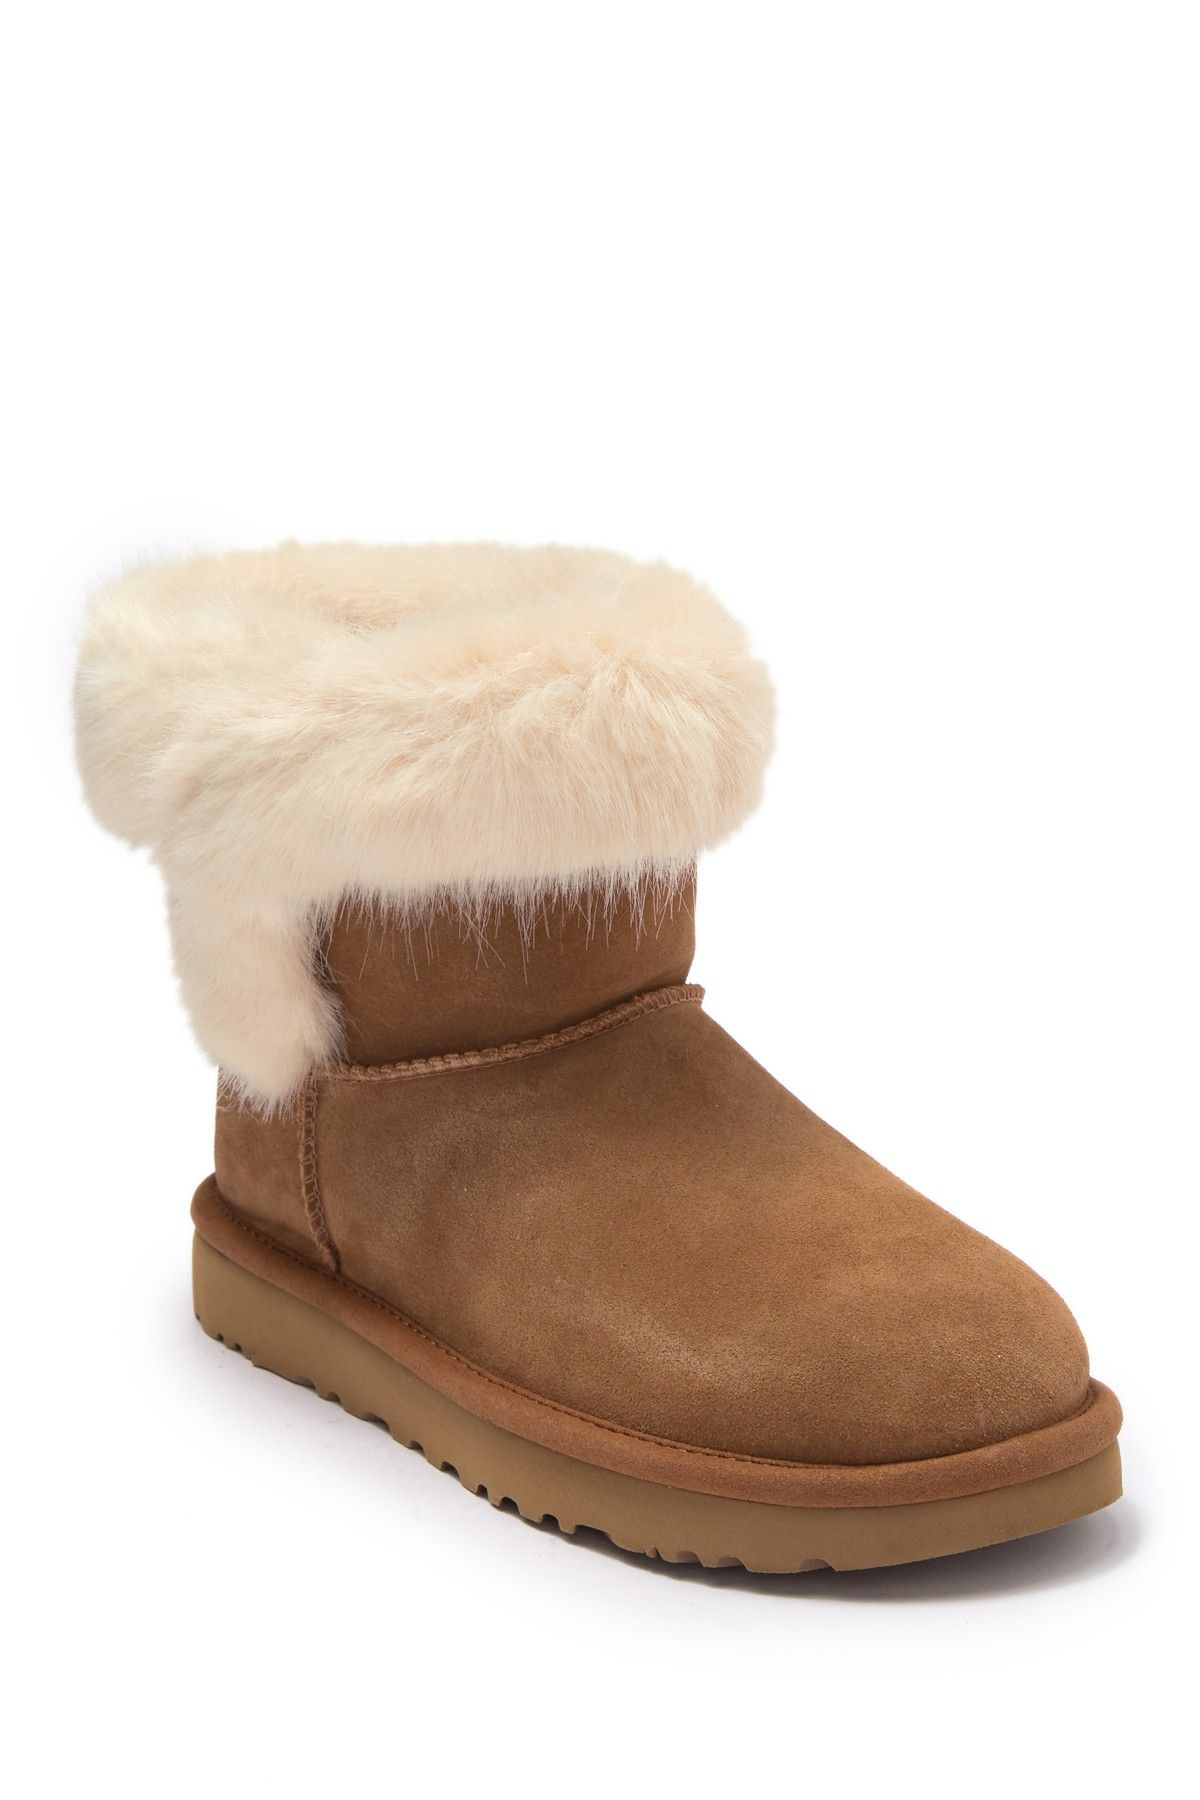 are uggs real sheepskin